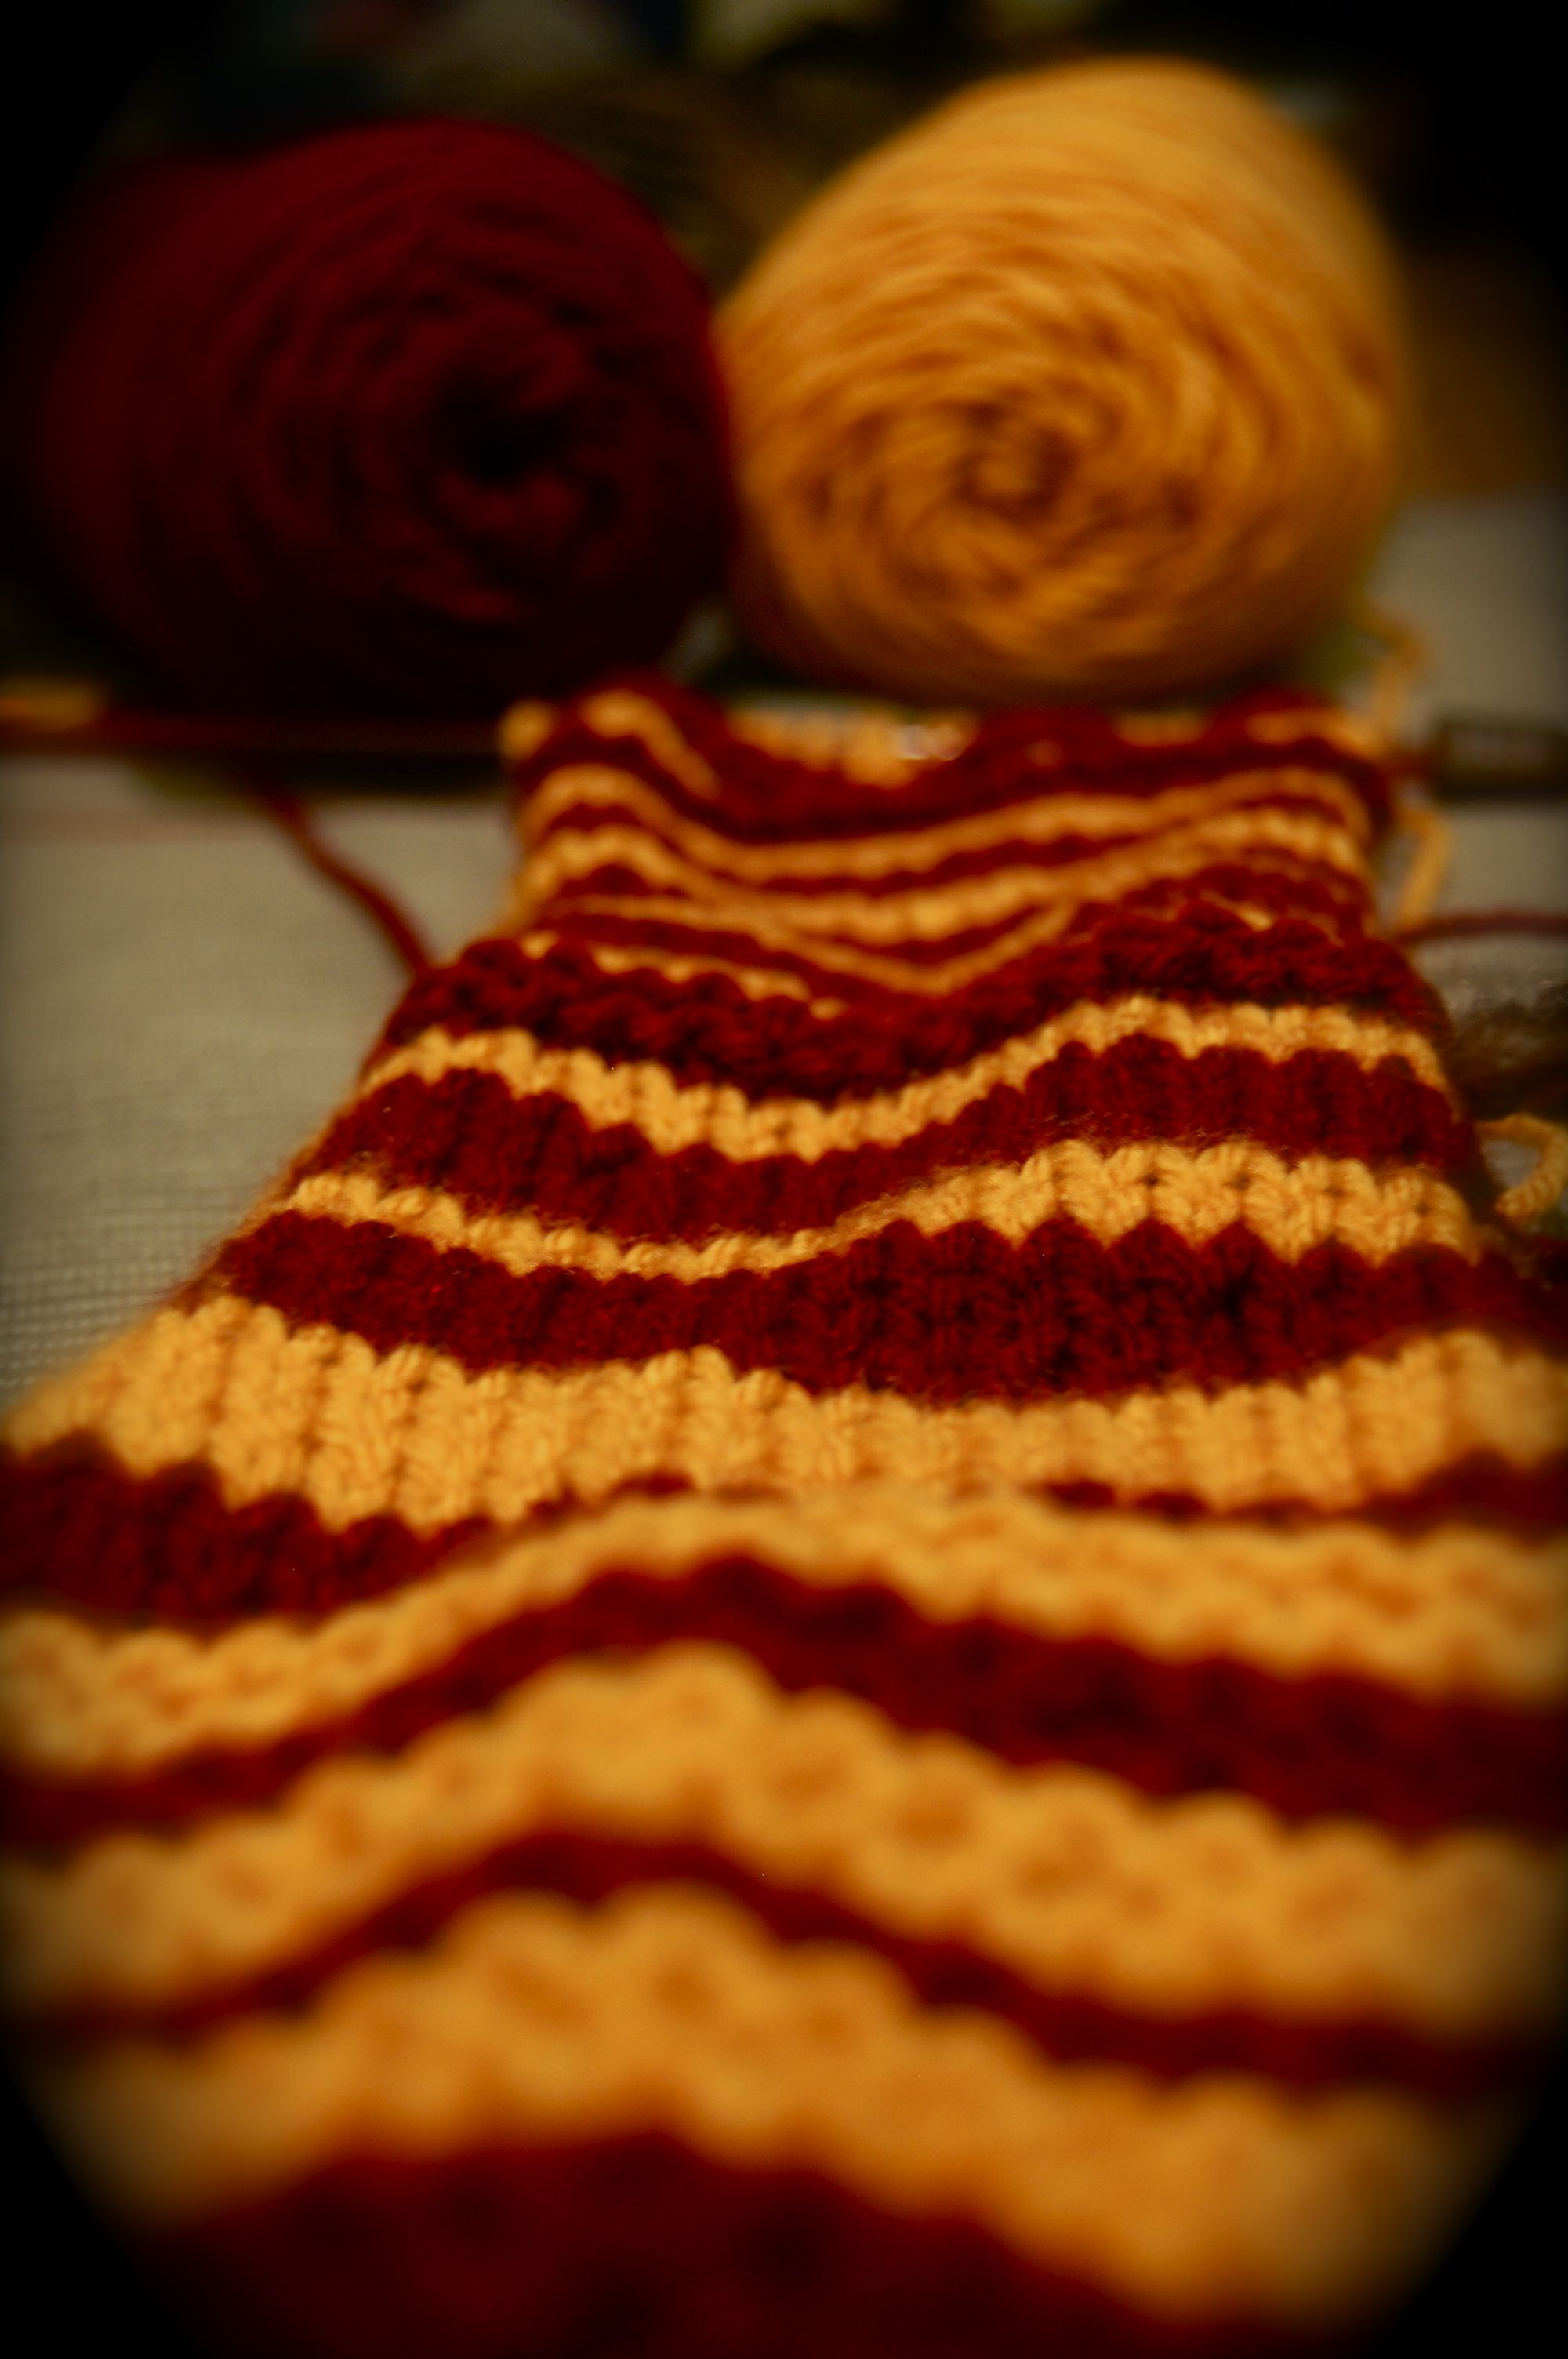 Gryffindor. It just occurred to me that I could knit my own Hogwarts ...